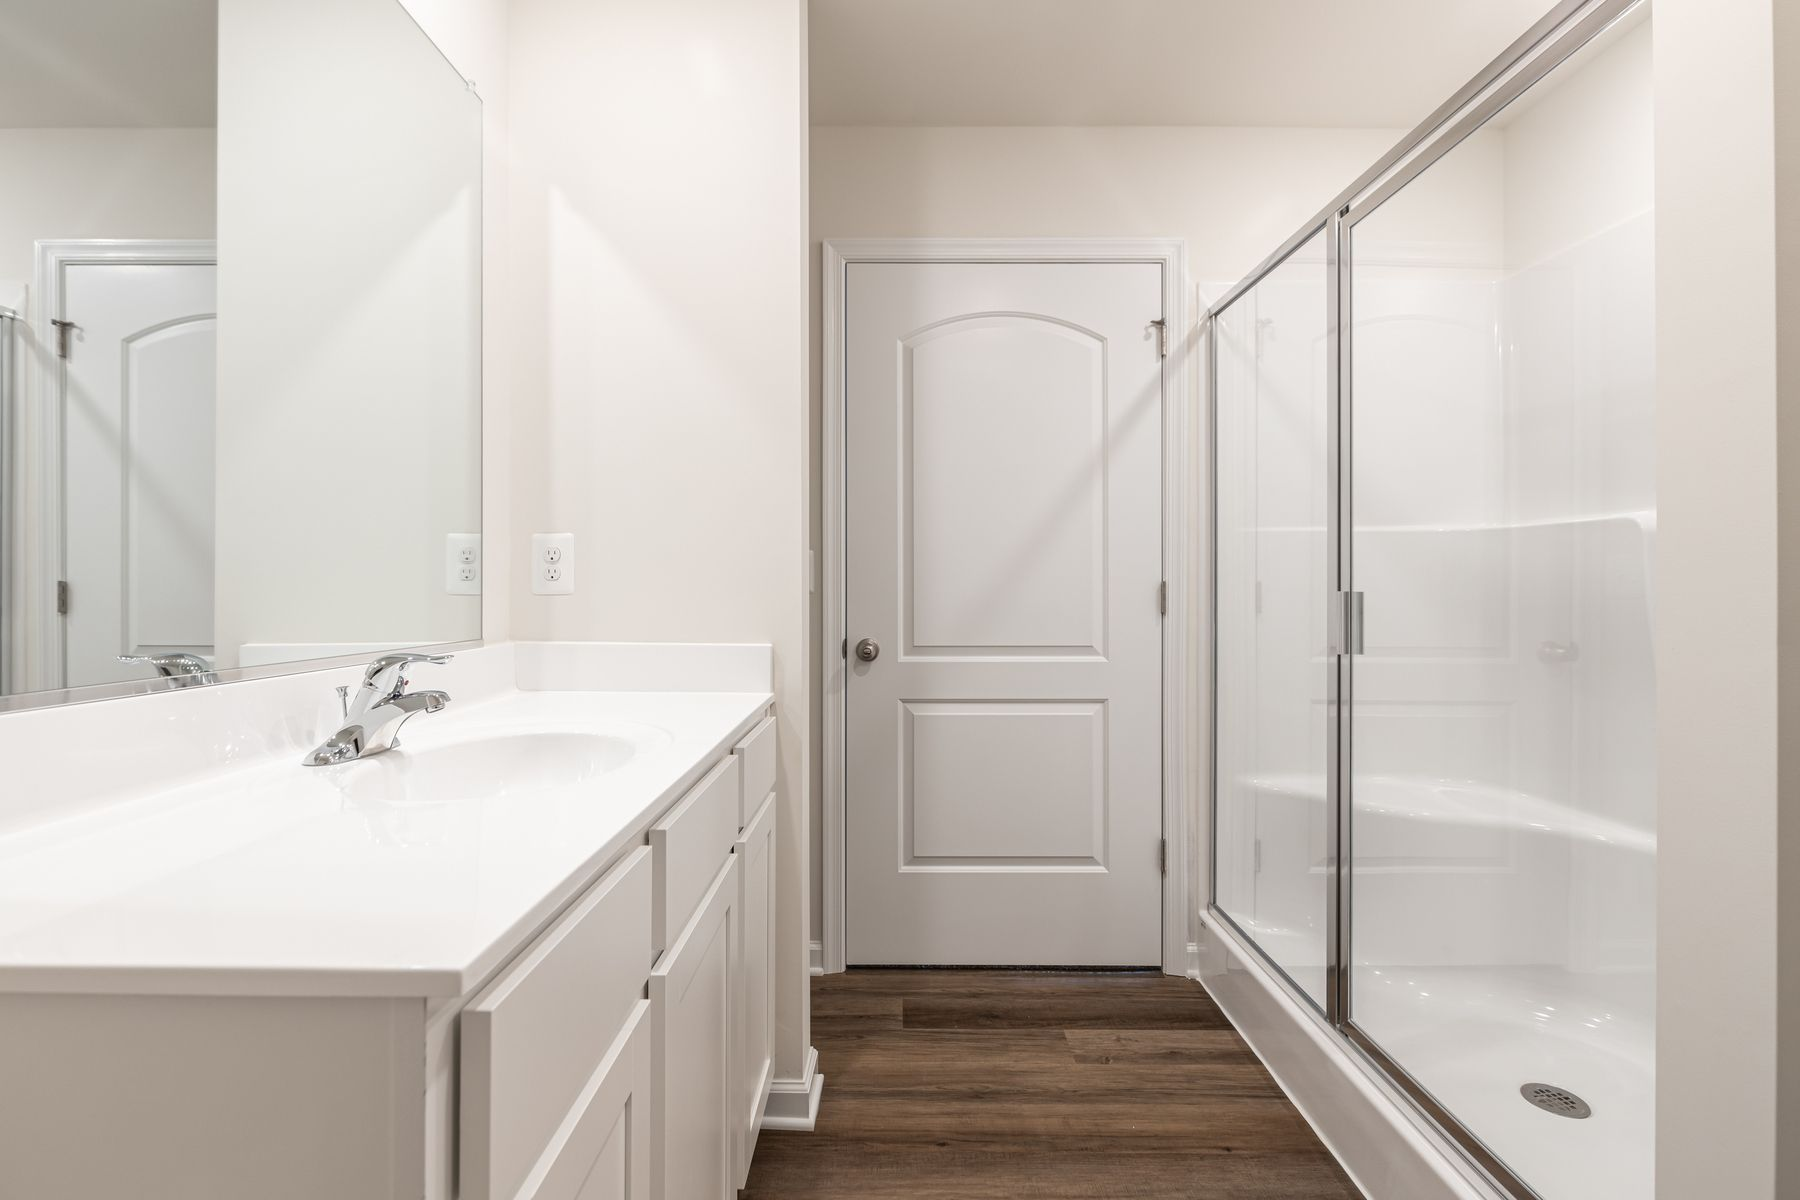 Bathroom featured in the Chatfield By LGI Homes in York, PA